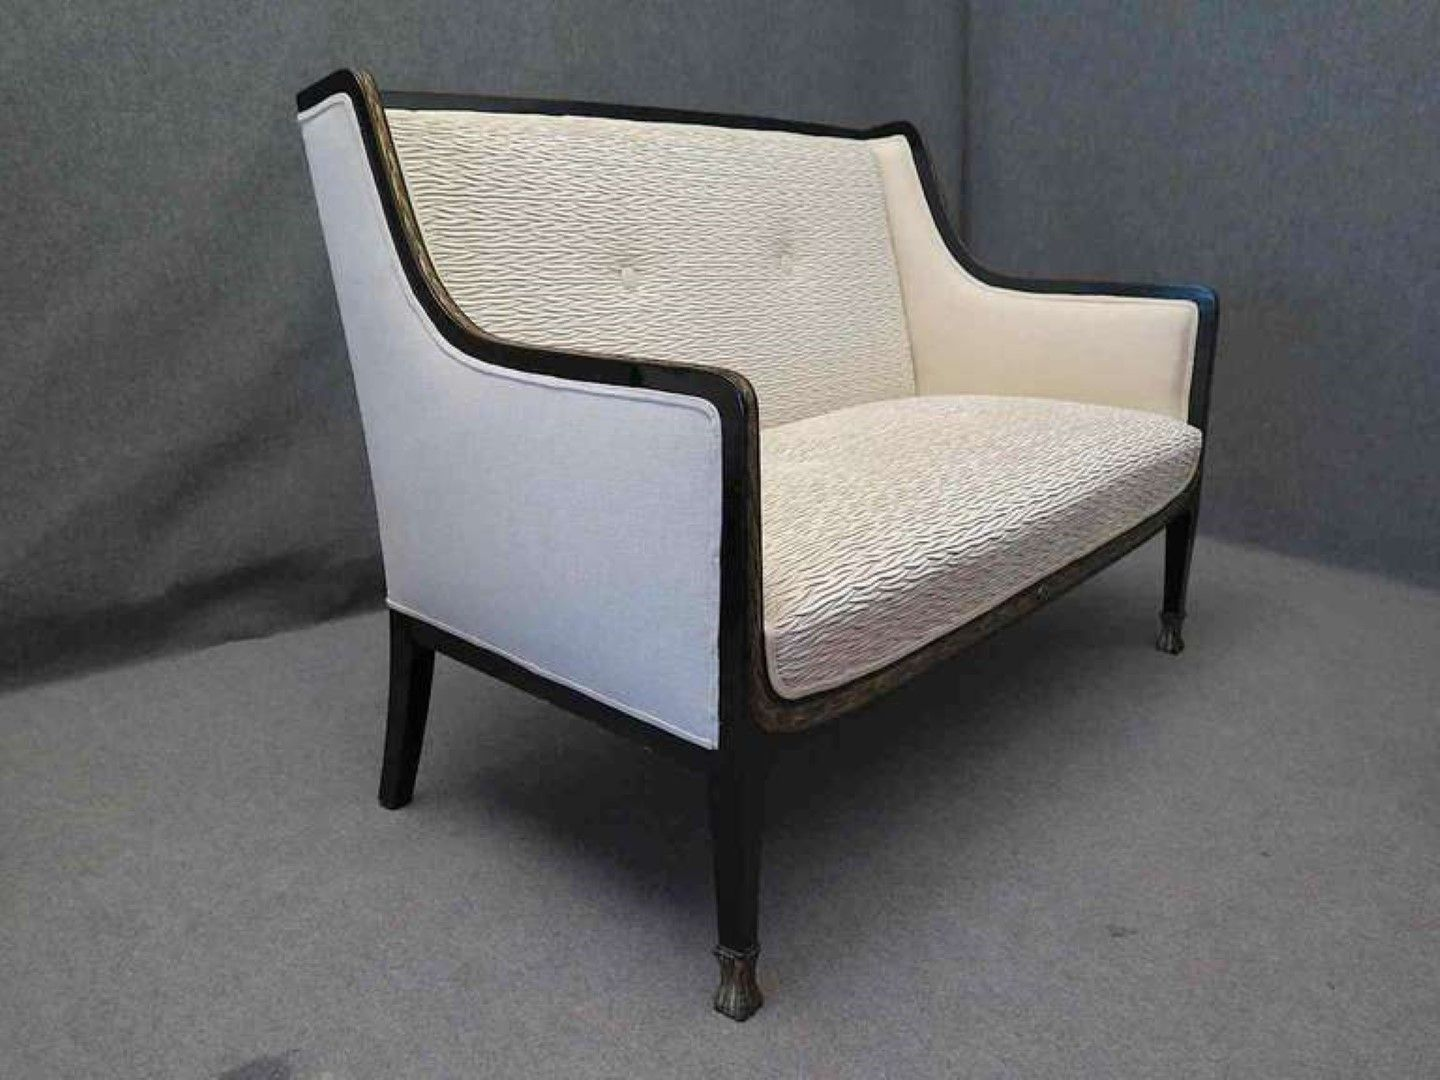 Austrian Art Deco Sofa 1920s